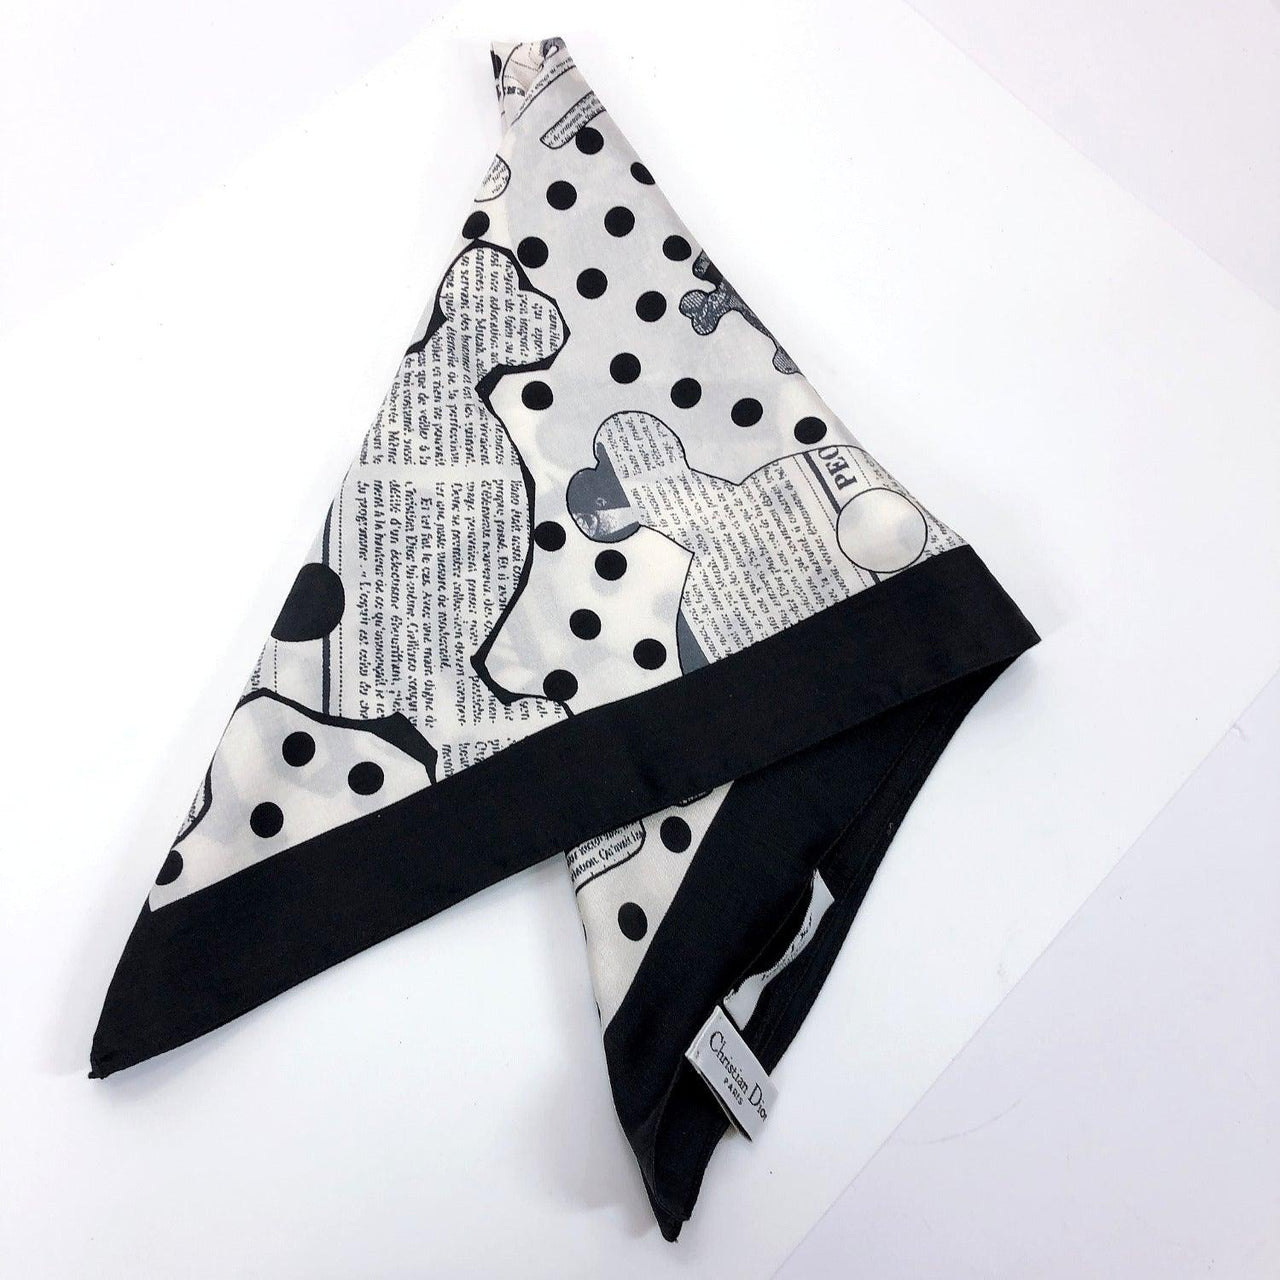 Christian Dior scarf Baby dior silk/cotton black white unisex Used